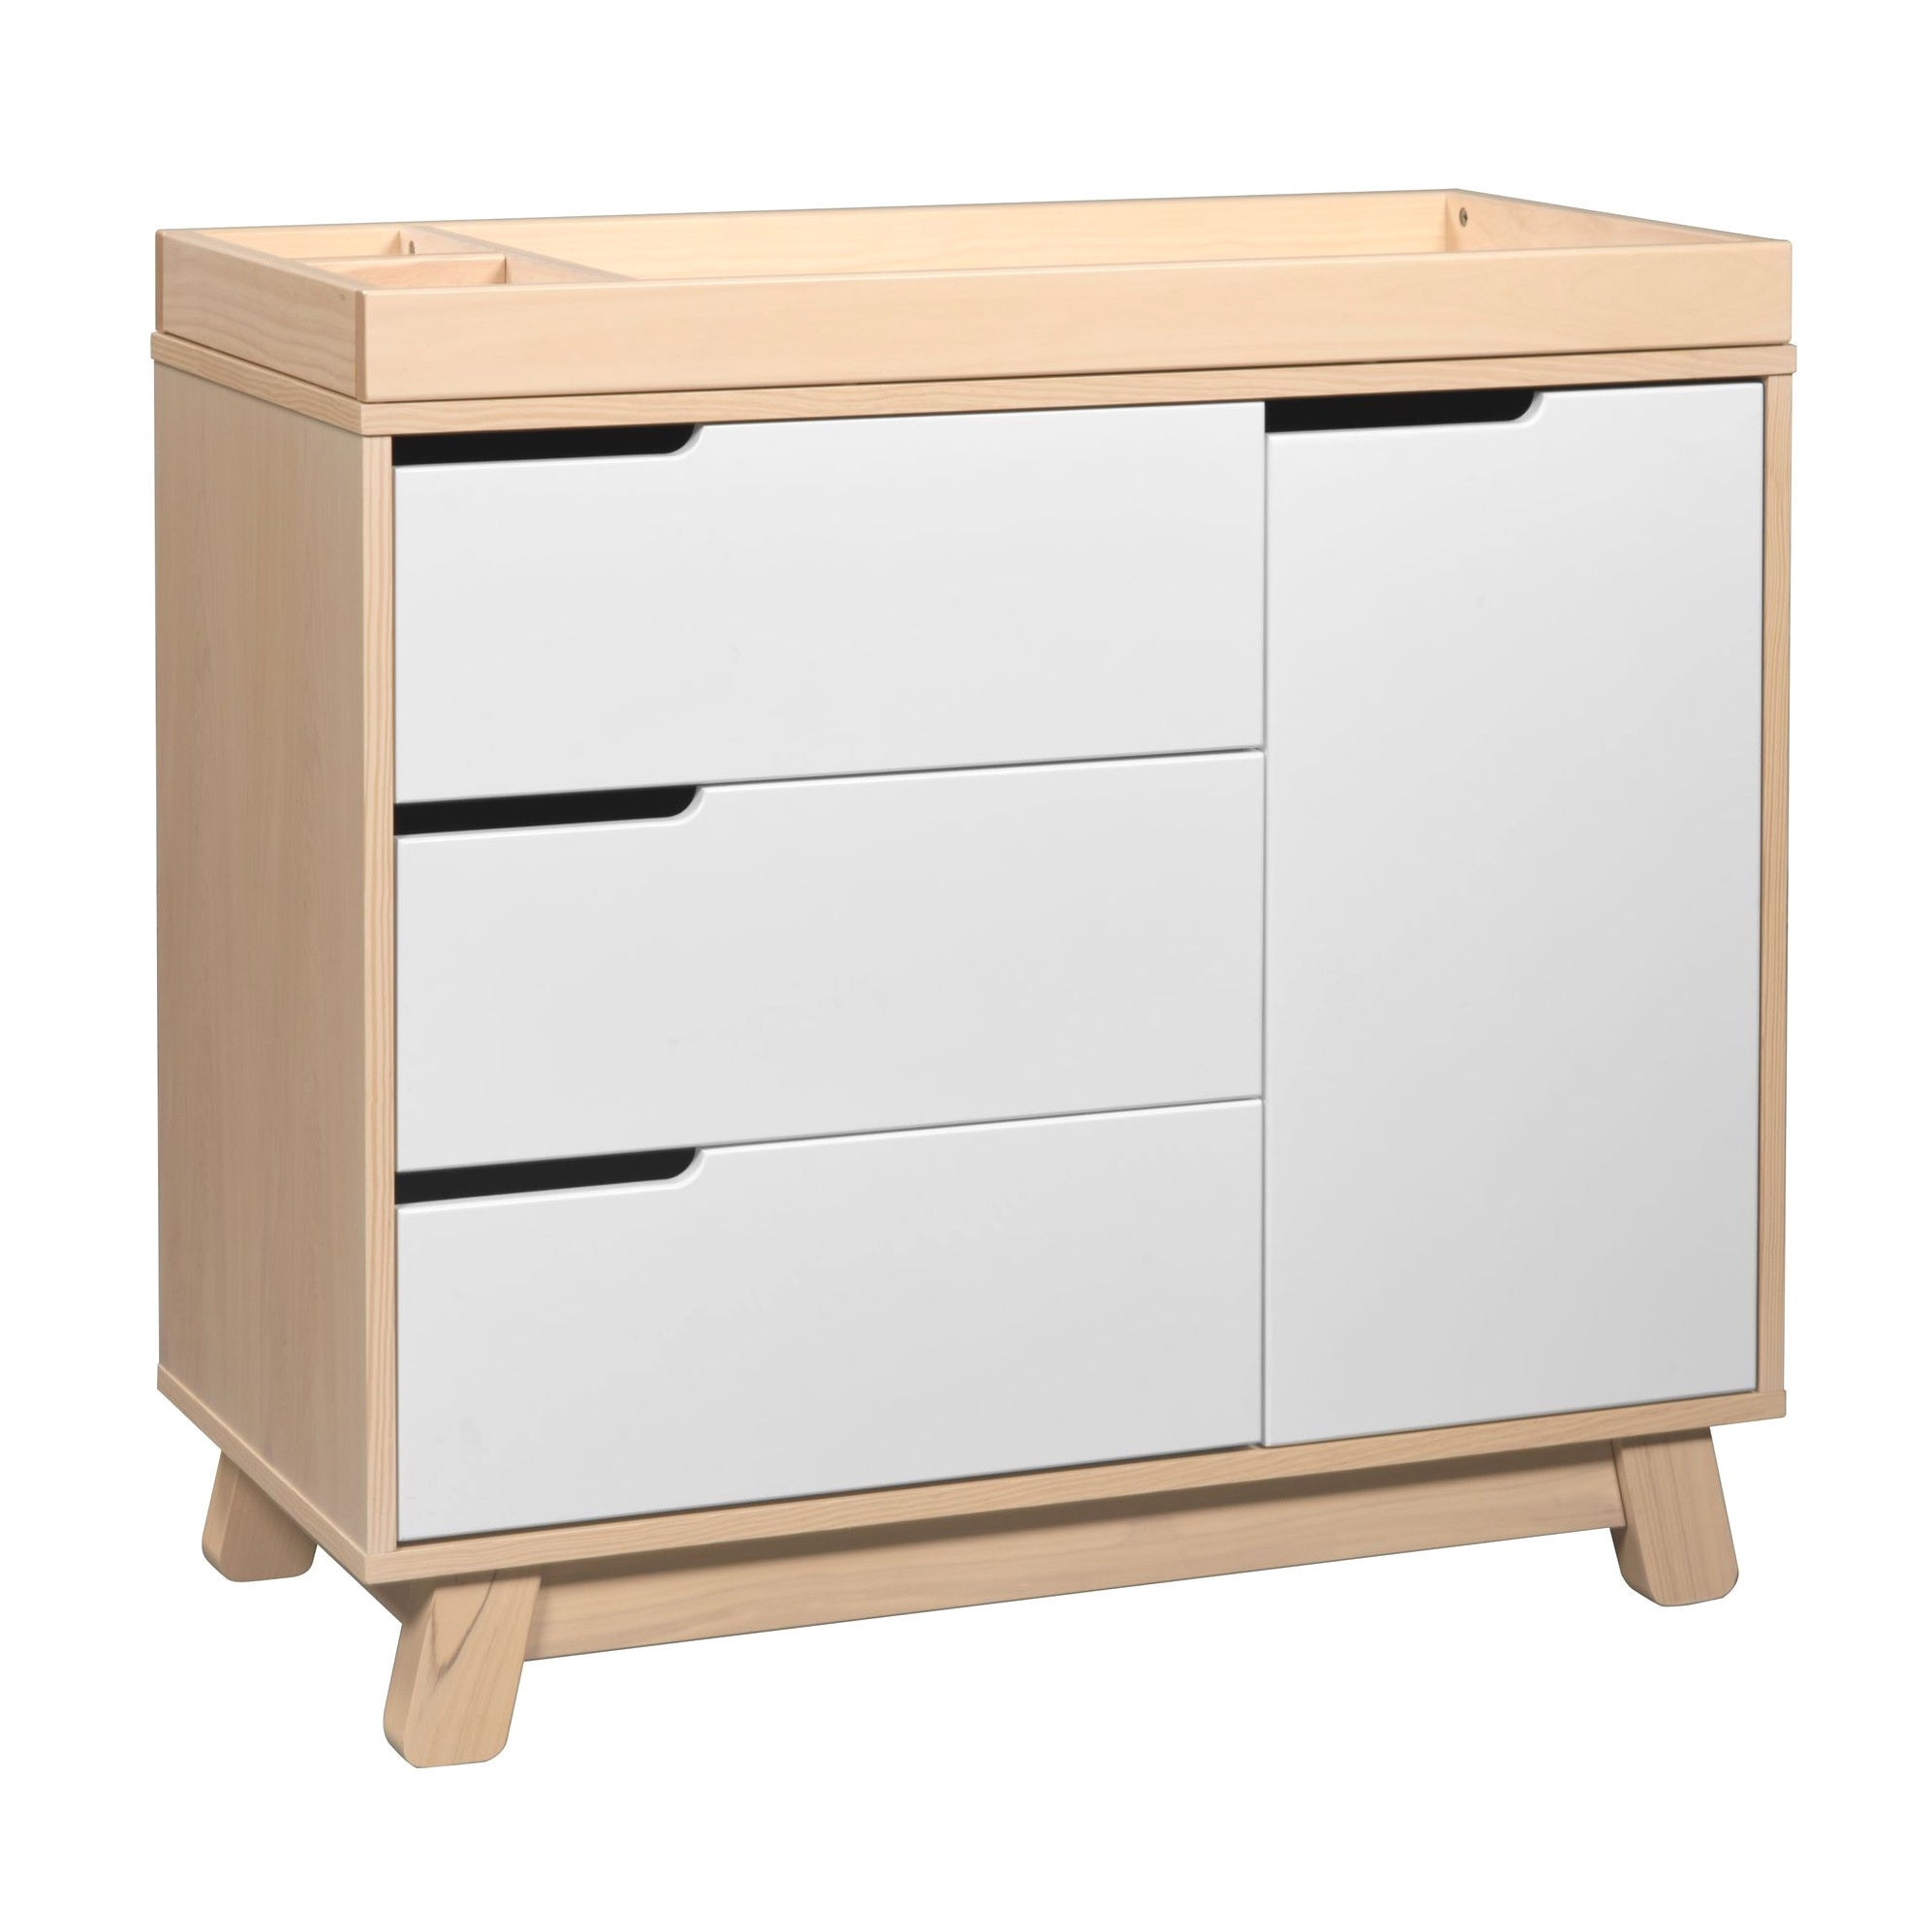 Shop Babyletto Hudson 3 Drawer Changer Dresser With Removable Changing Tray    Free Shipping Today   Overstock.com   7641799